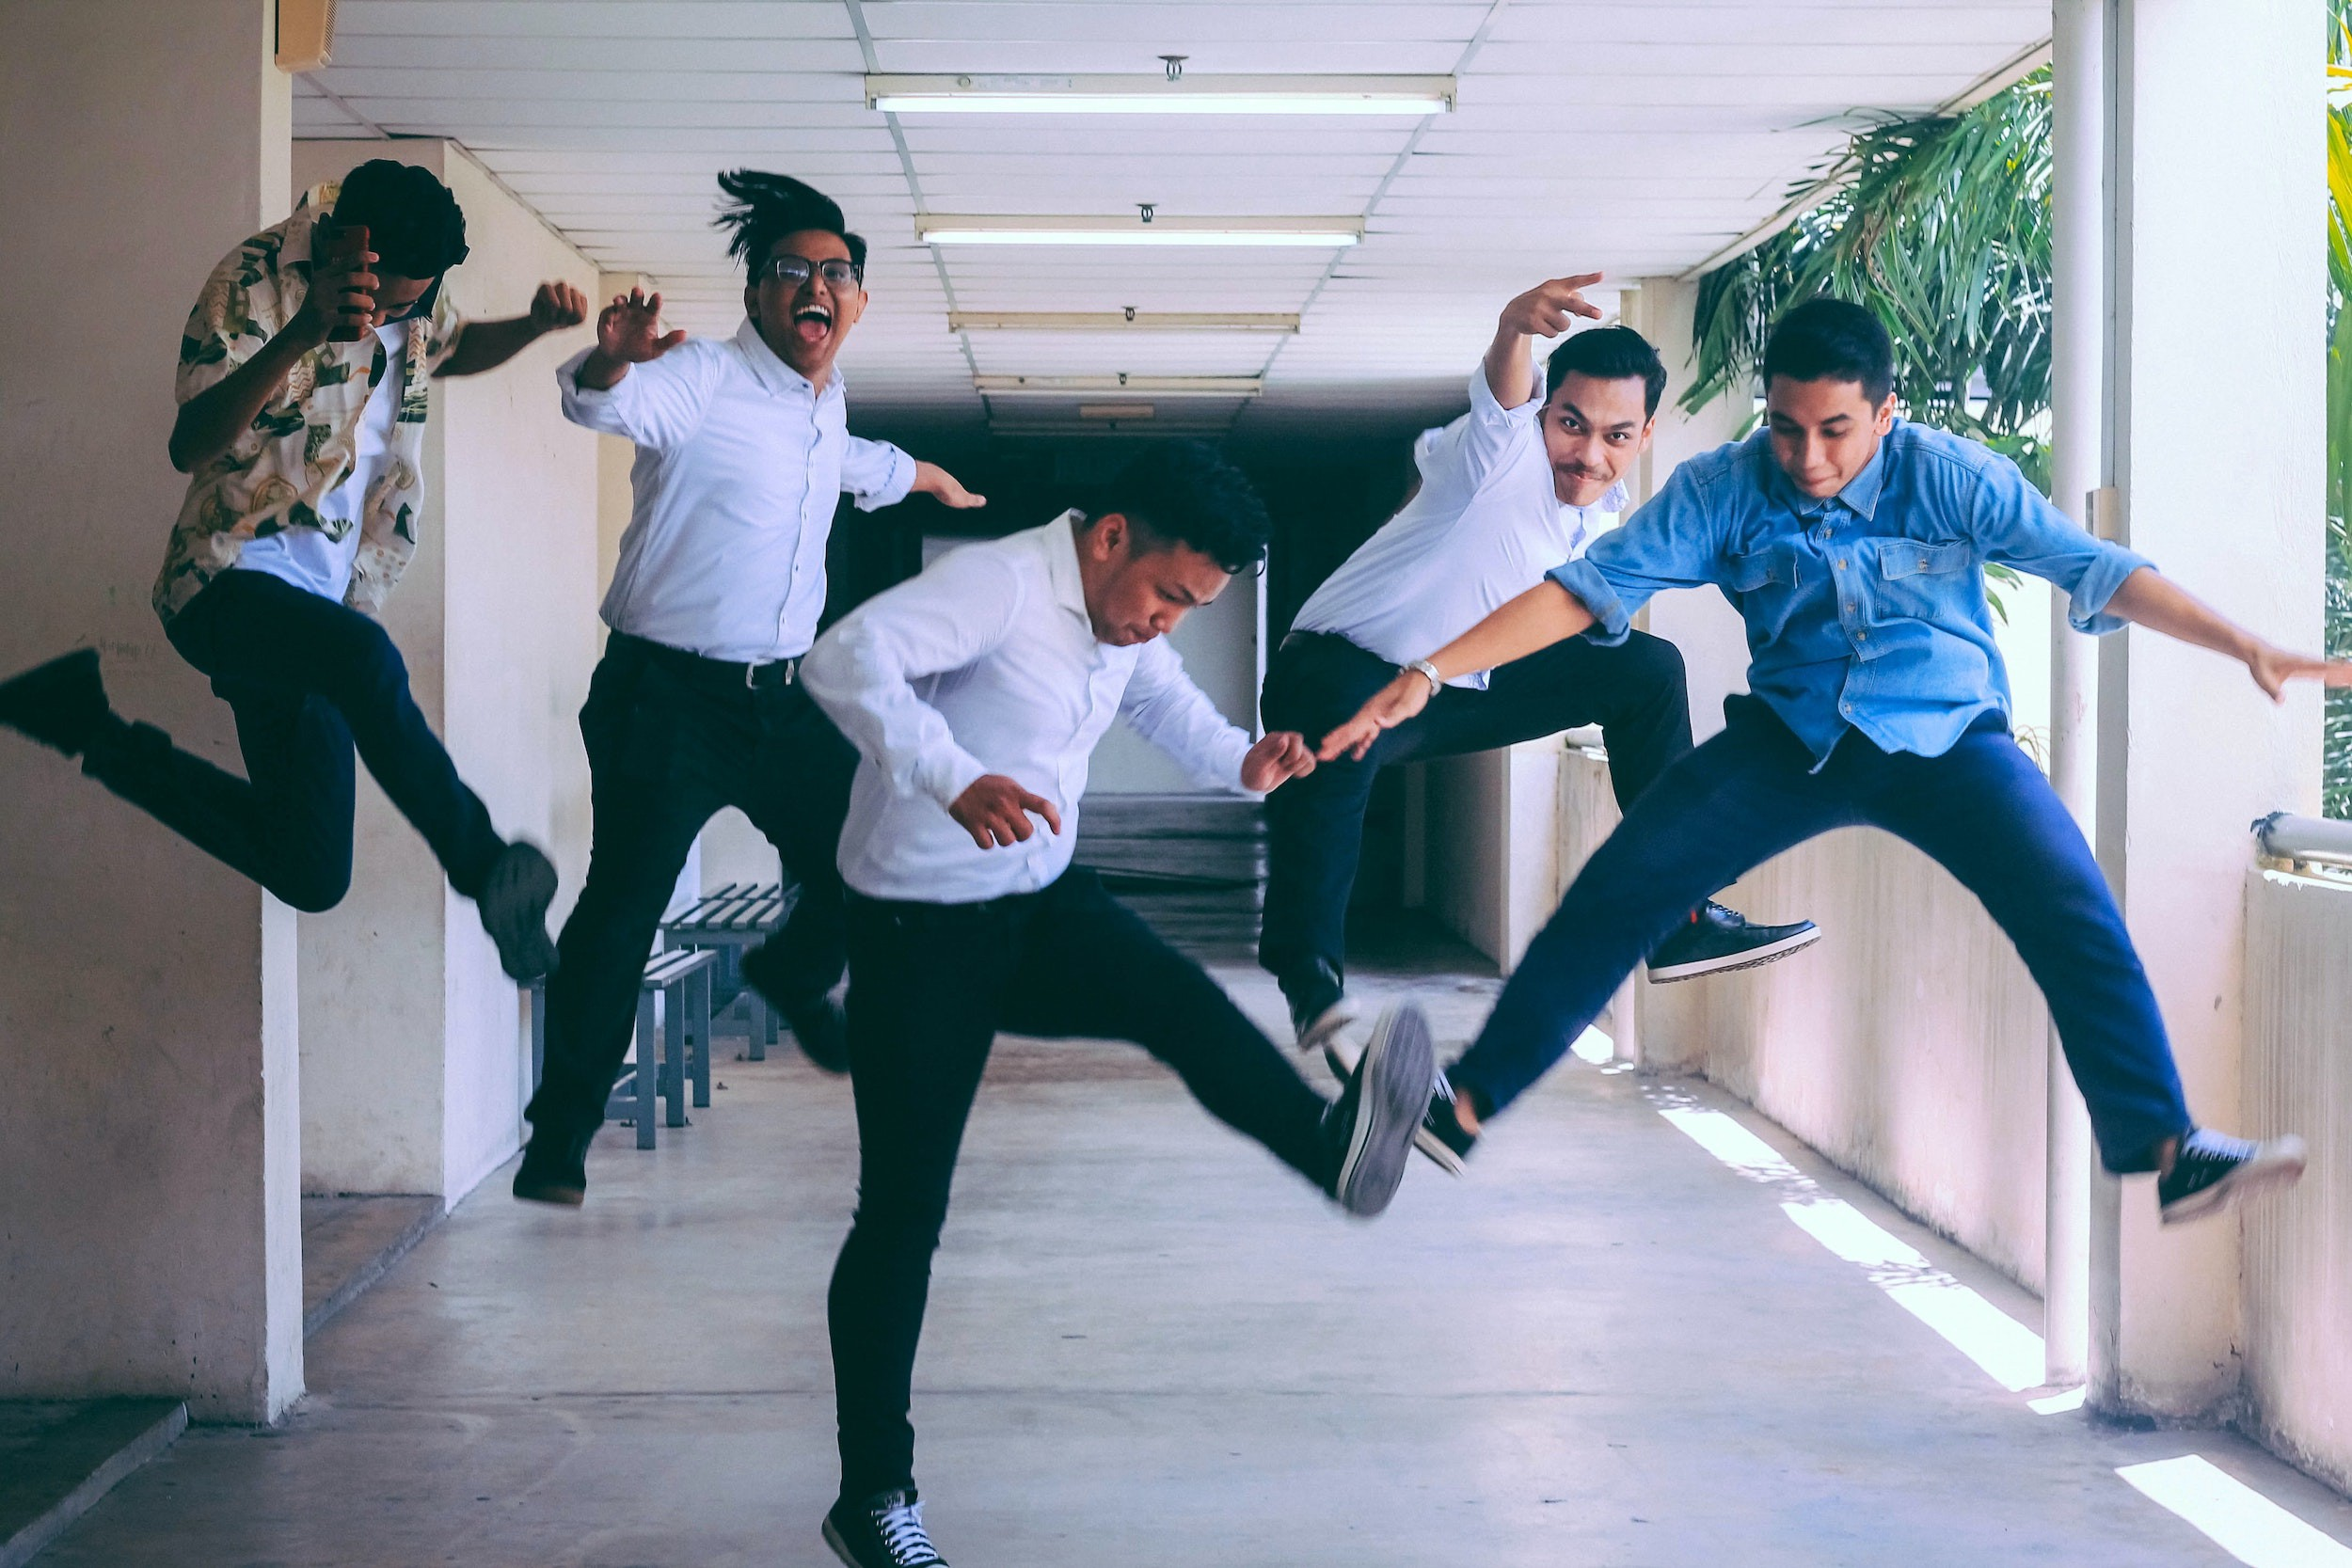 Five people jumping happily.